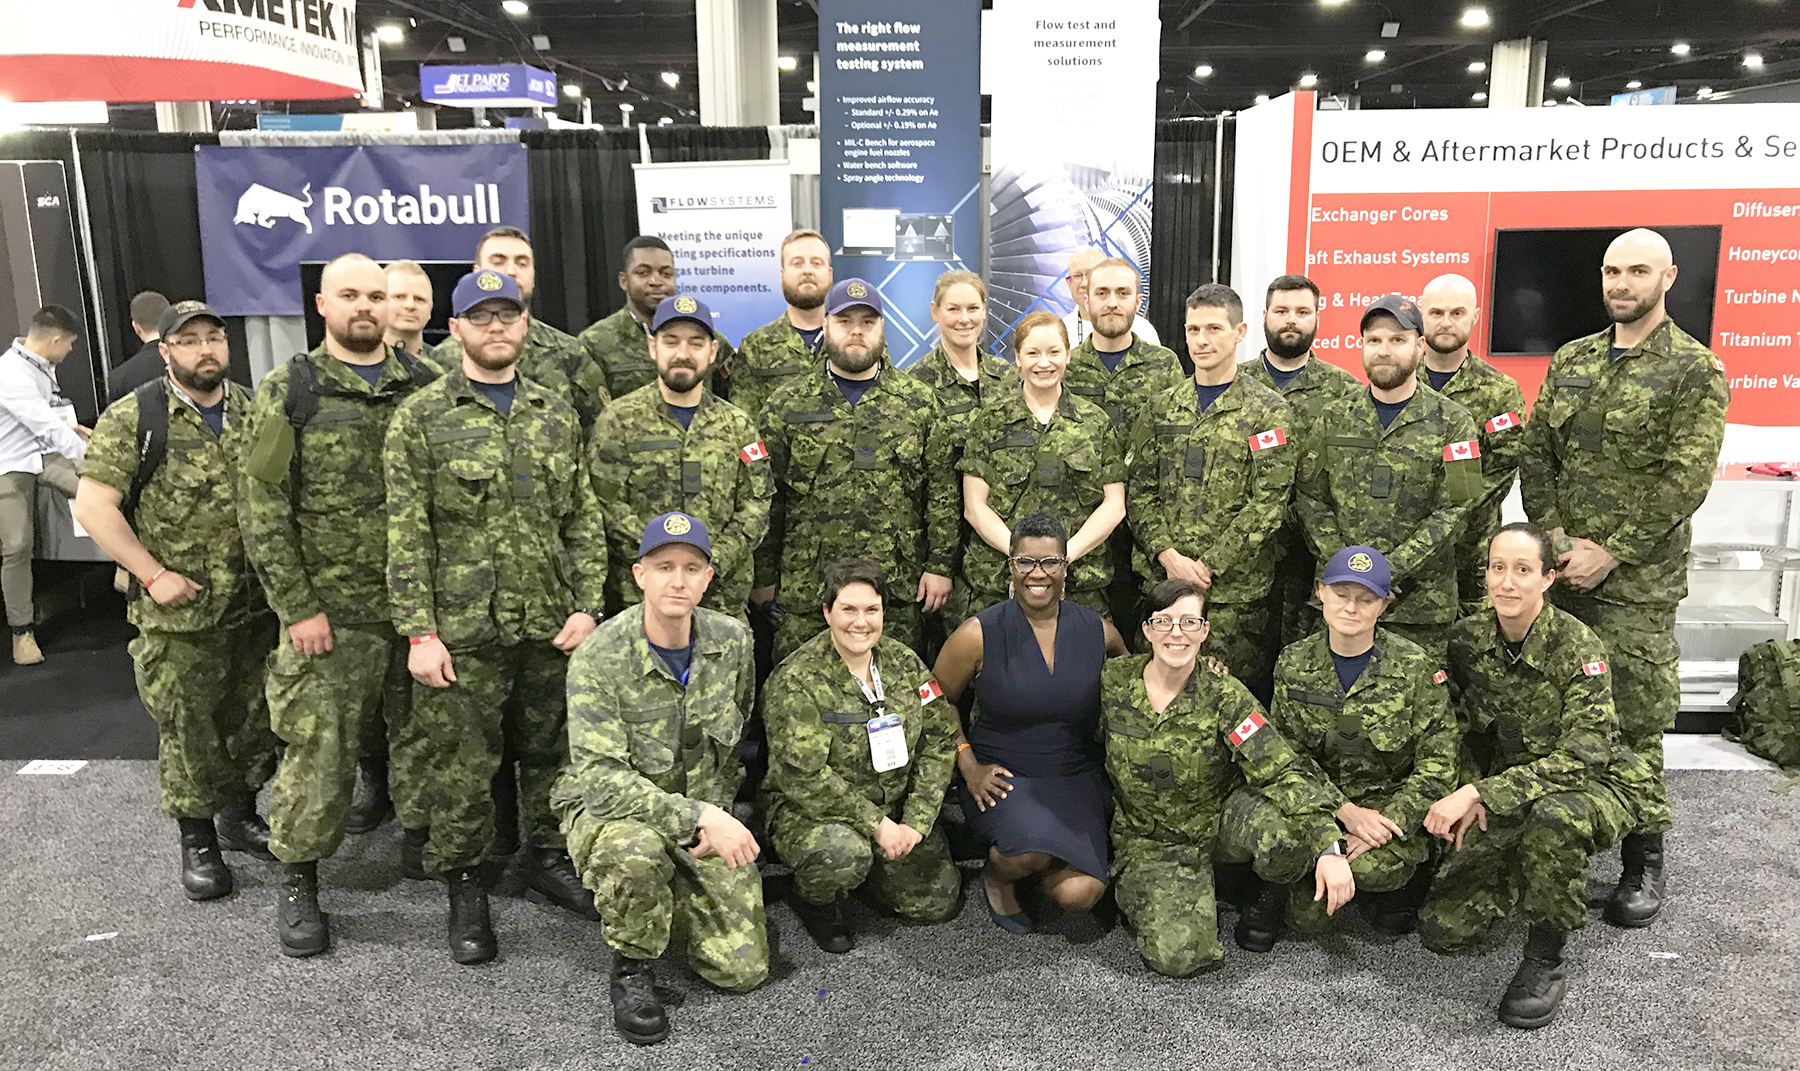 Nadia Theodore (kneeling, centre), Consul General of Canada in Atlanta, met with RCAF air maintenance technicians during the Aerospace Maintenance Competition held in Atlanta, Georgia, April 8-11, 2019. PHOTO: RCAF